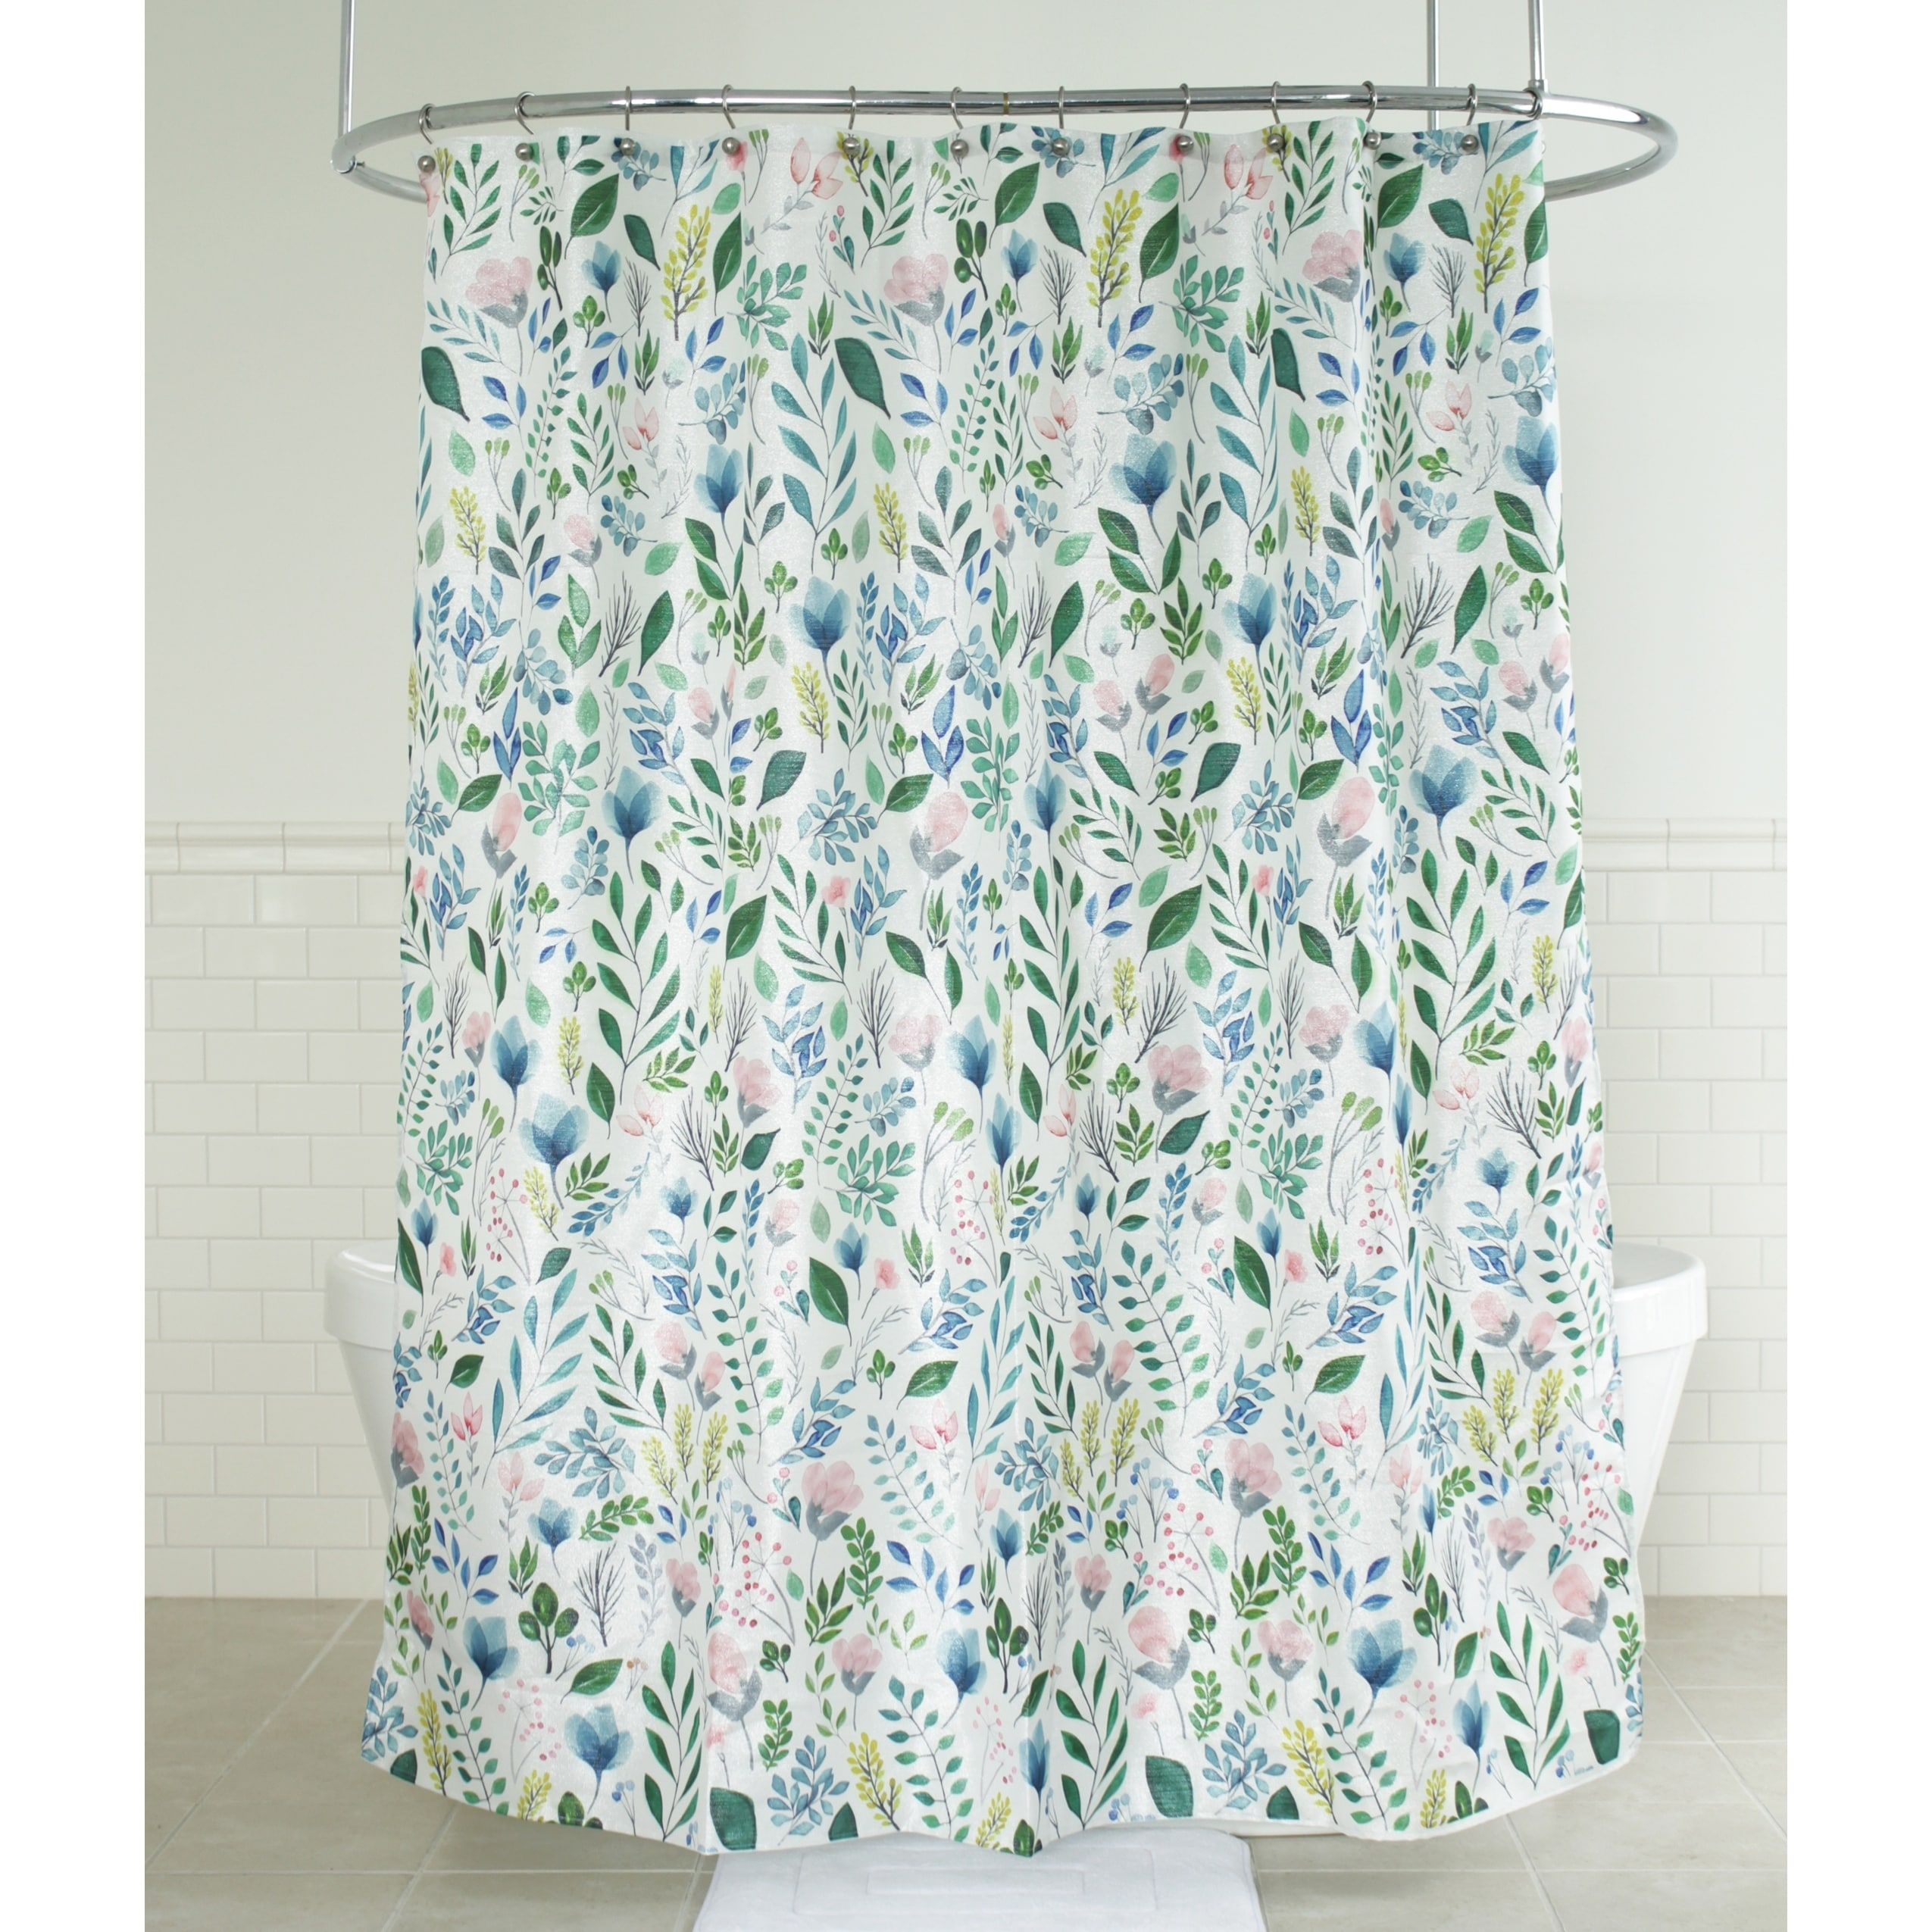 Details About Splash Home Sia Floral Polyester Fabric Shower Curtain 70 X 72